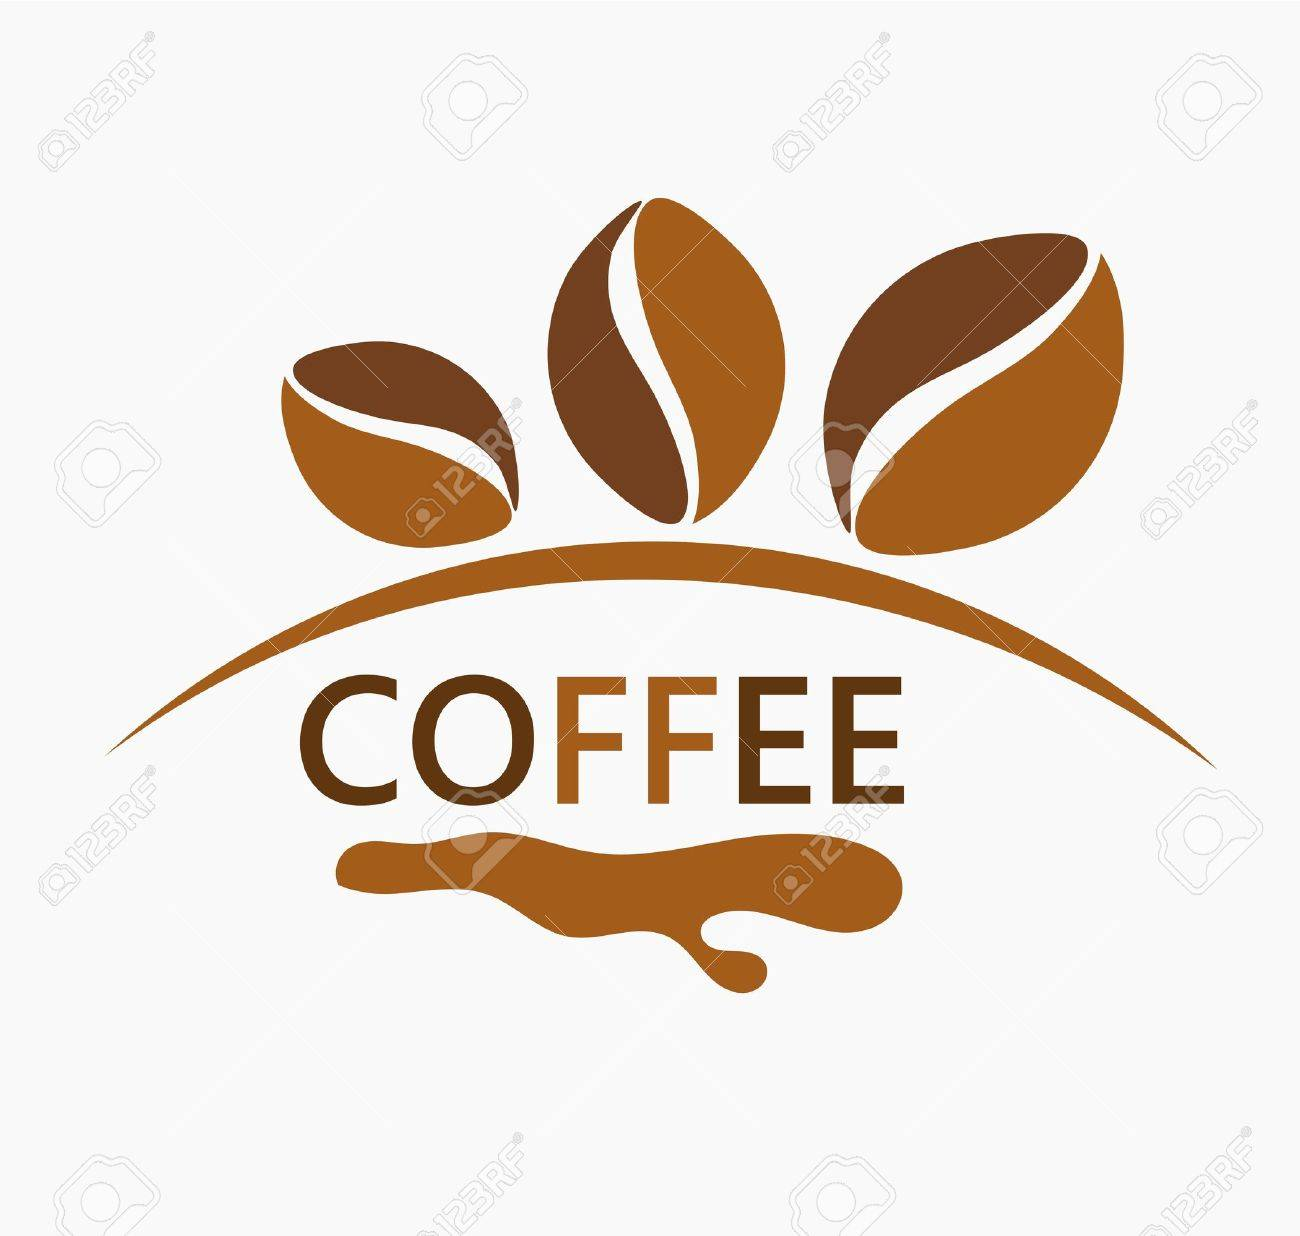 Coffee beans design illustration Stock Vector - 19905721